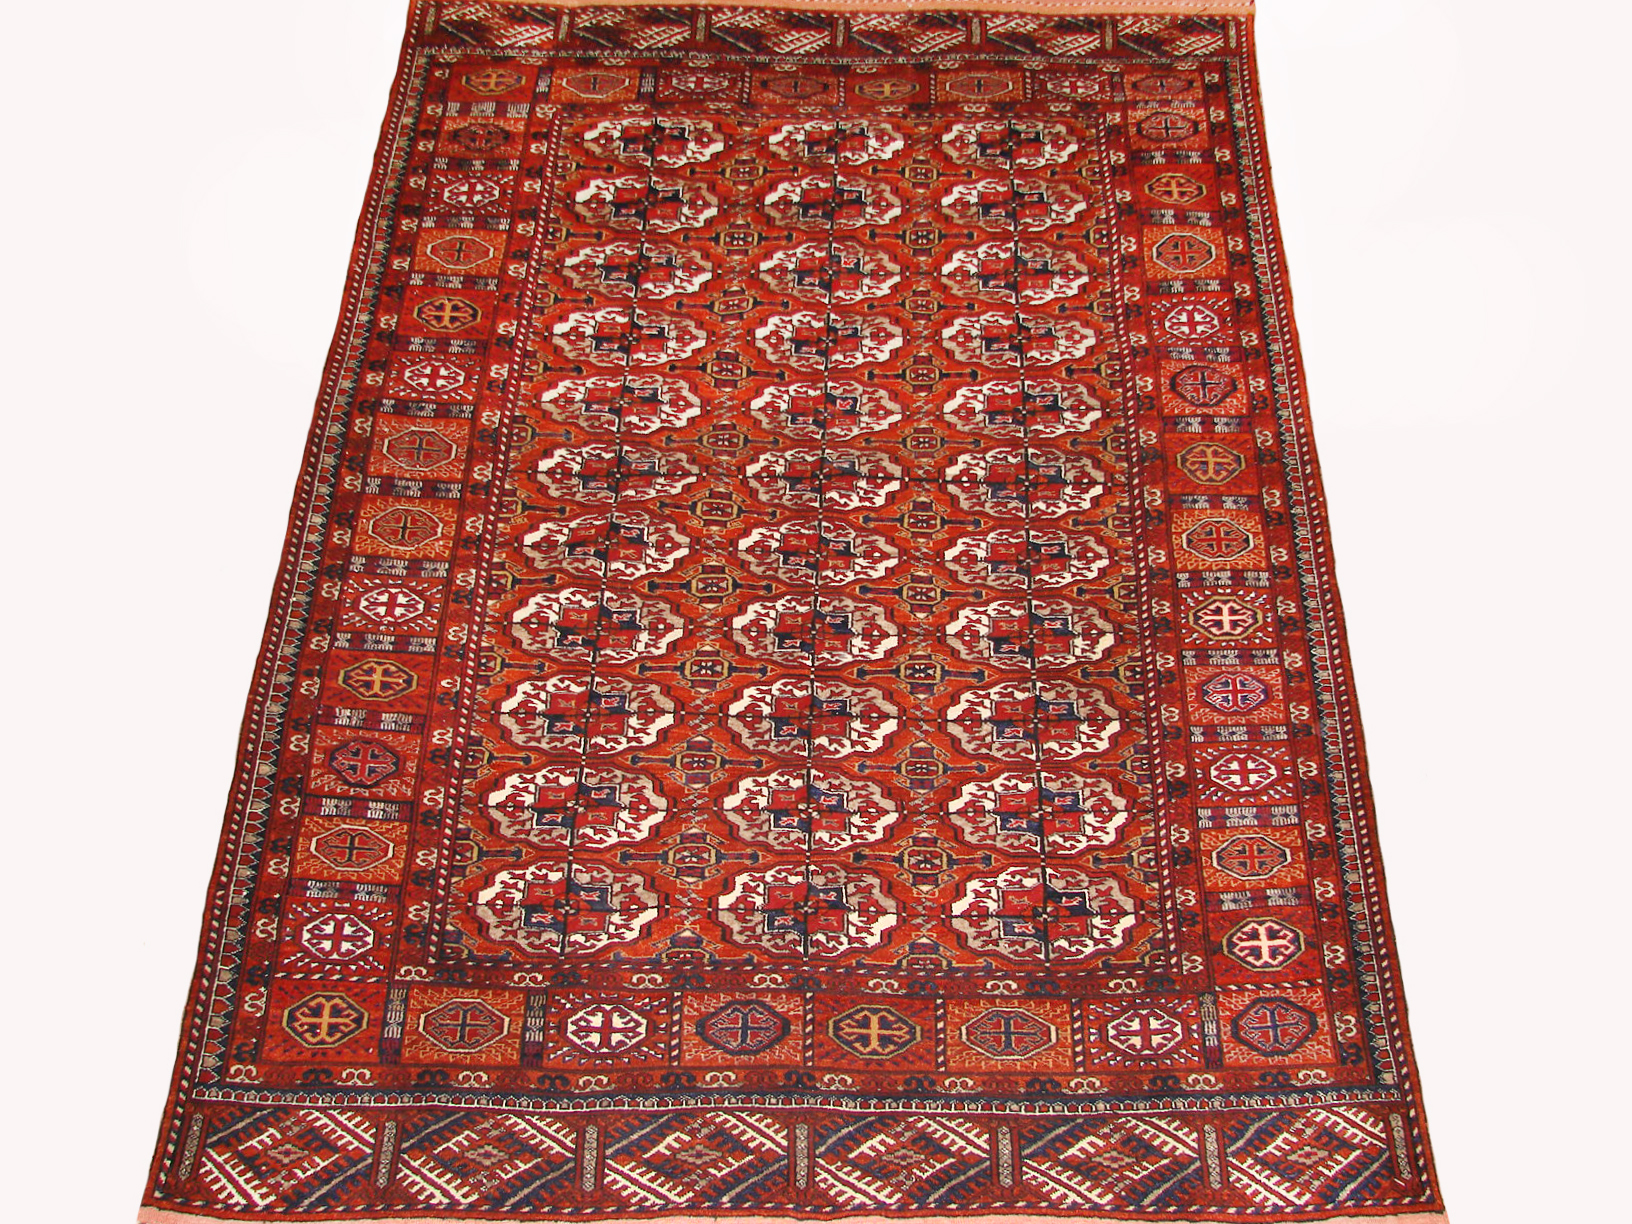 4x6 Bokhara Hand Knotted Wool Area Rug - MR19448